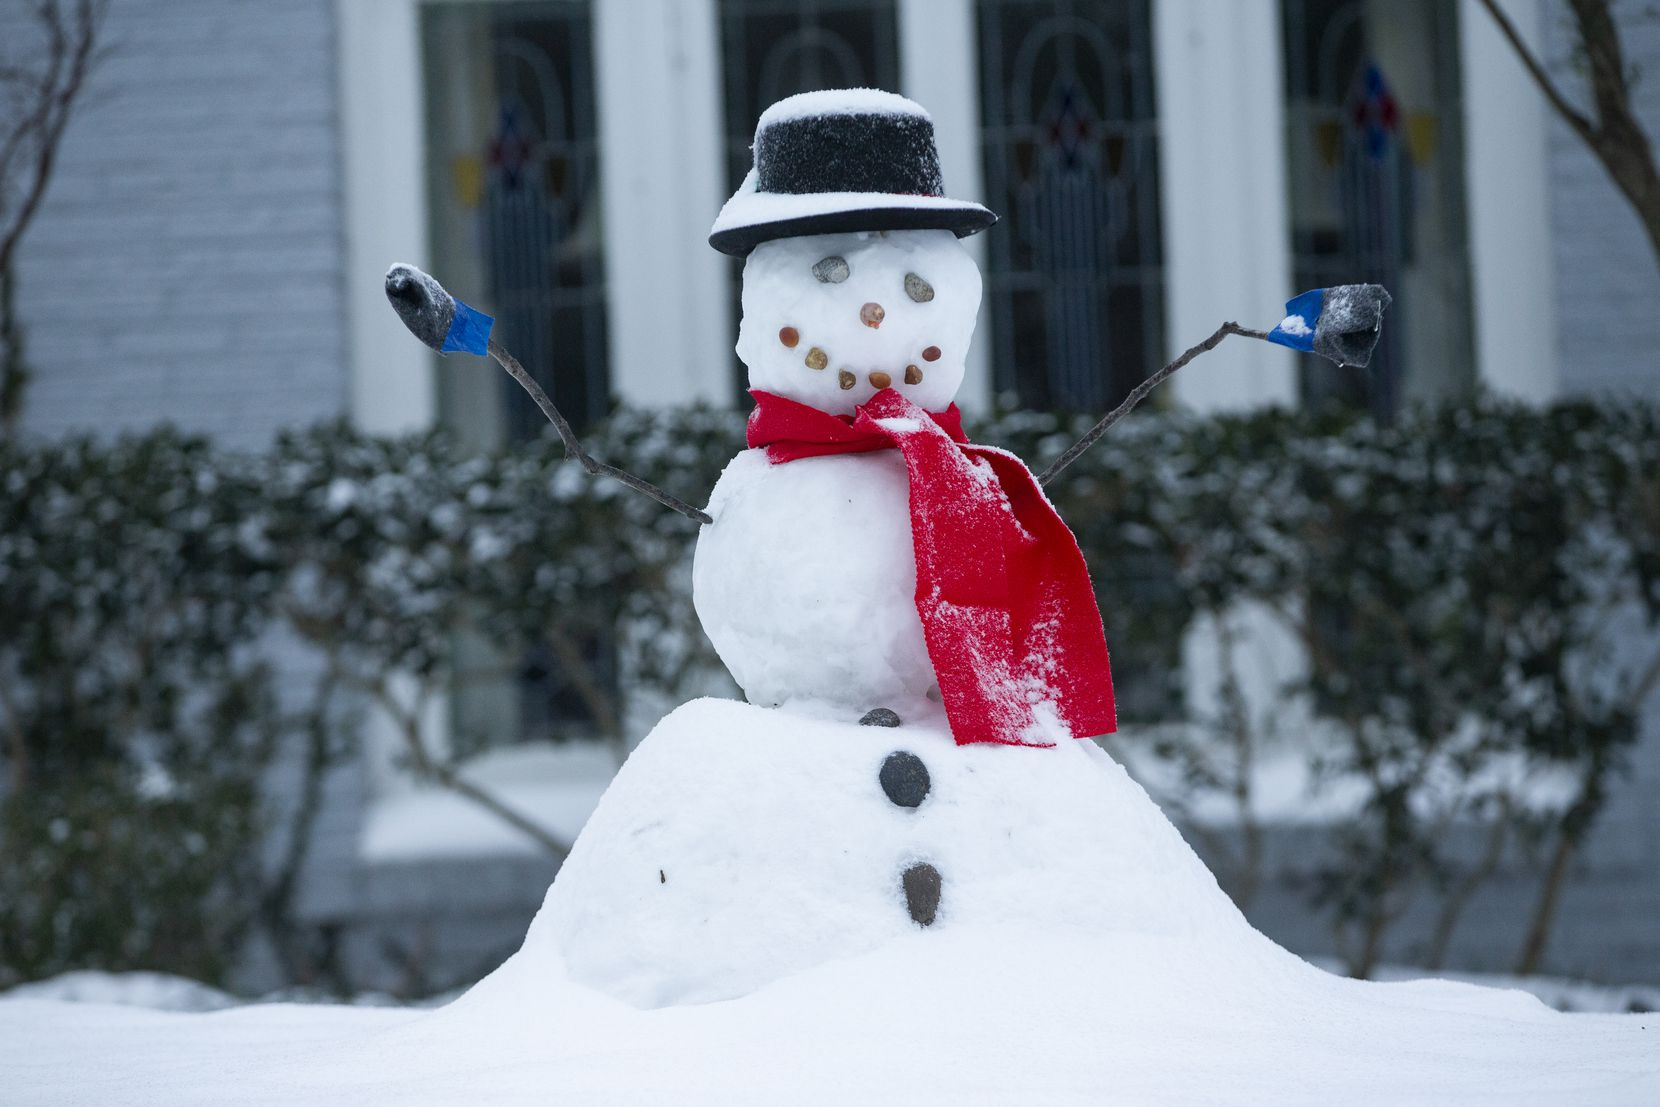 A snowman in Lower Greenville sits with fresh snow on its head in Dallas on Wednesday, Feb. 17, 2021. Millions of Texans have lost power amid this record-breaking winter storm.